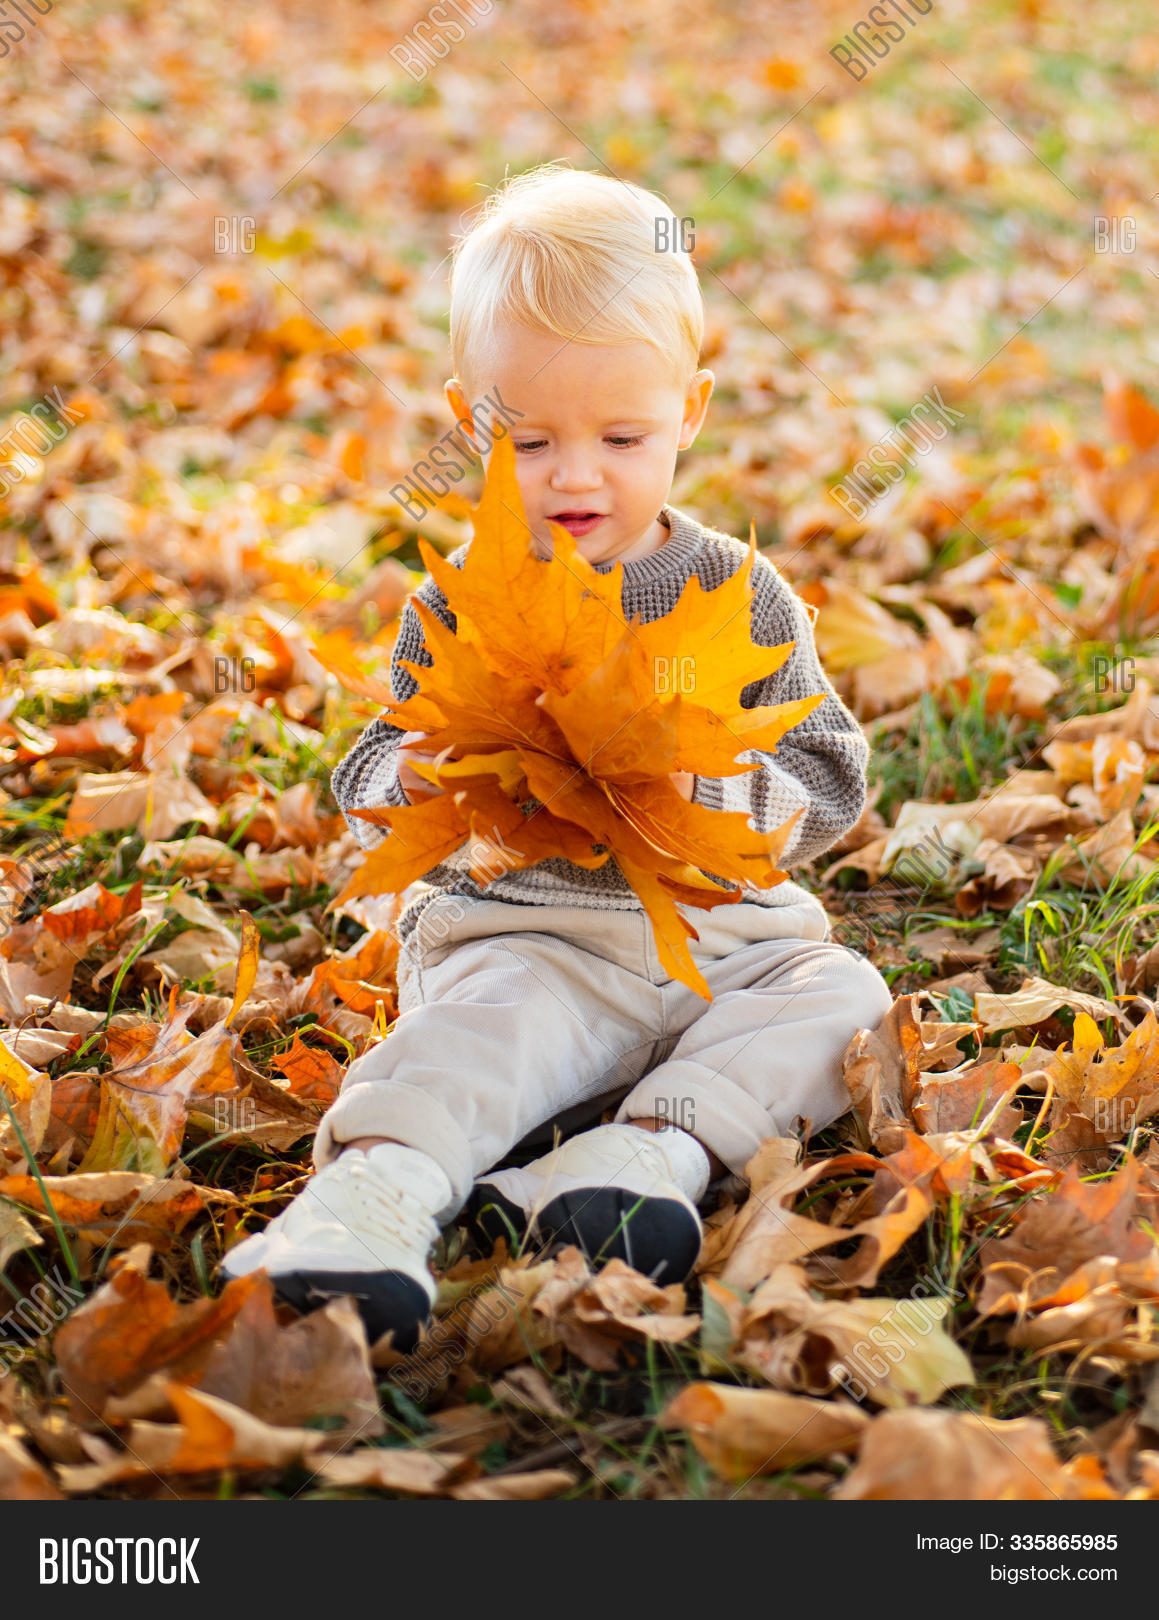 autumn,autumnal,baby,beatiful,child,childhood,children,colorful,cute,day,face,fall,falling,garden,happiness,hold,holding,holiday,kid,leaf,leaves,maple,nature,orange,outdoor,people,play,playing,portrait,season,sunny,yellow